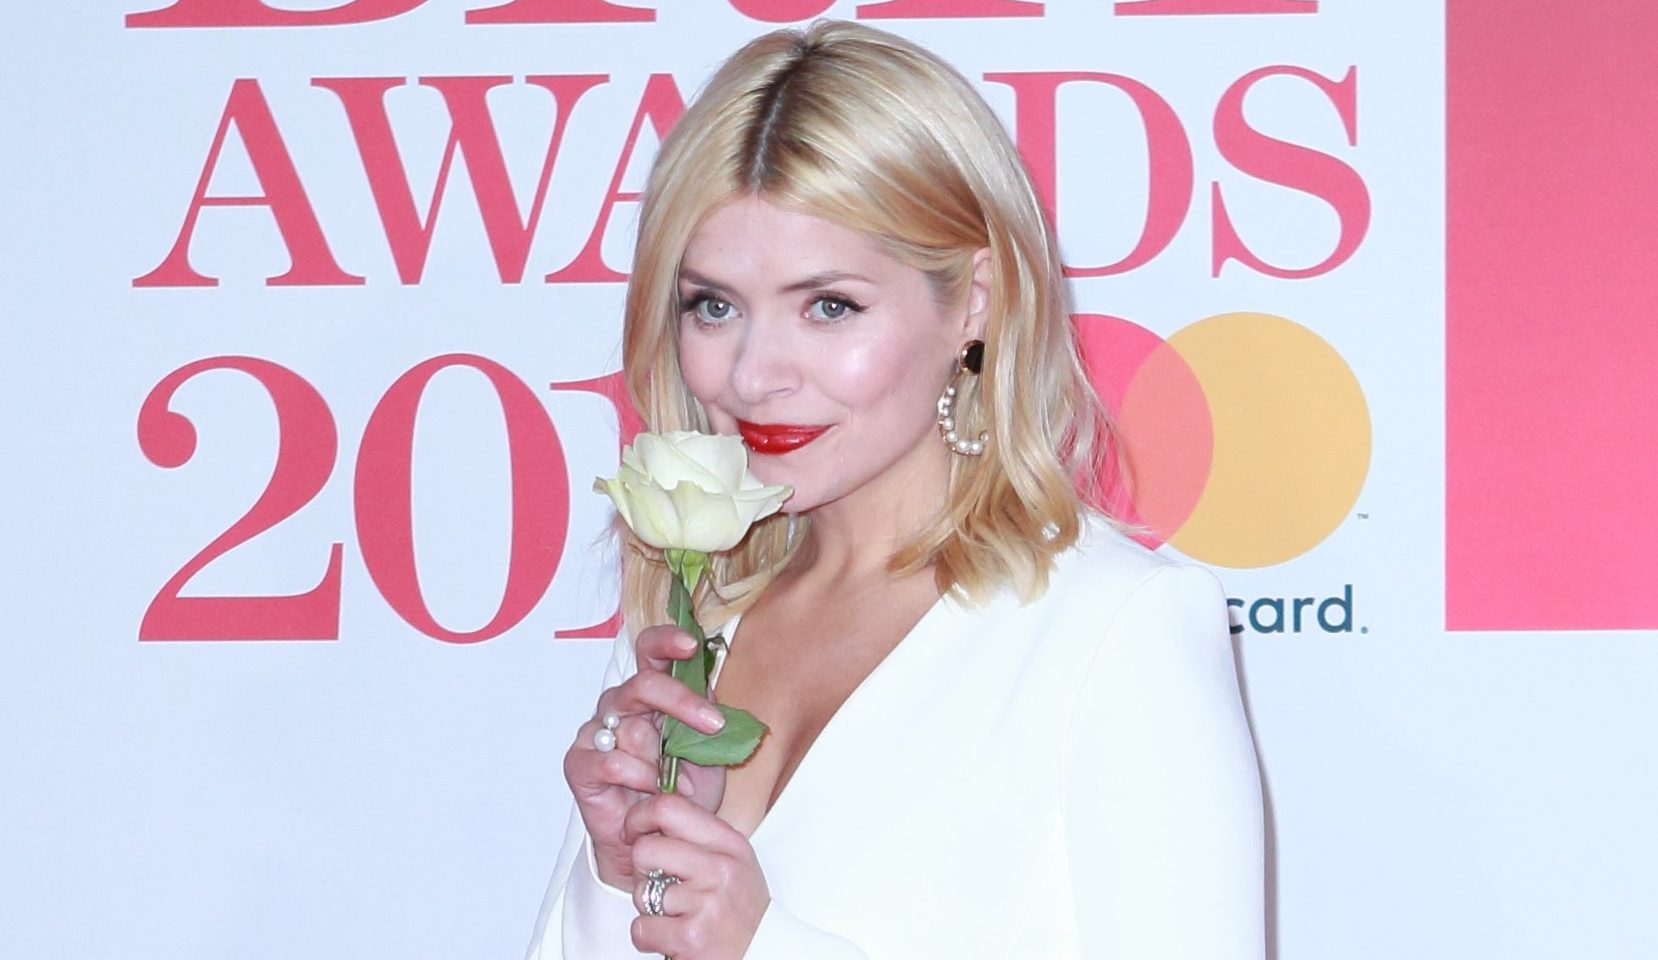 Holly Willoughby unleashes rare rant over BRIT Awards photos